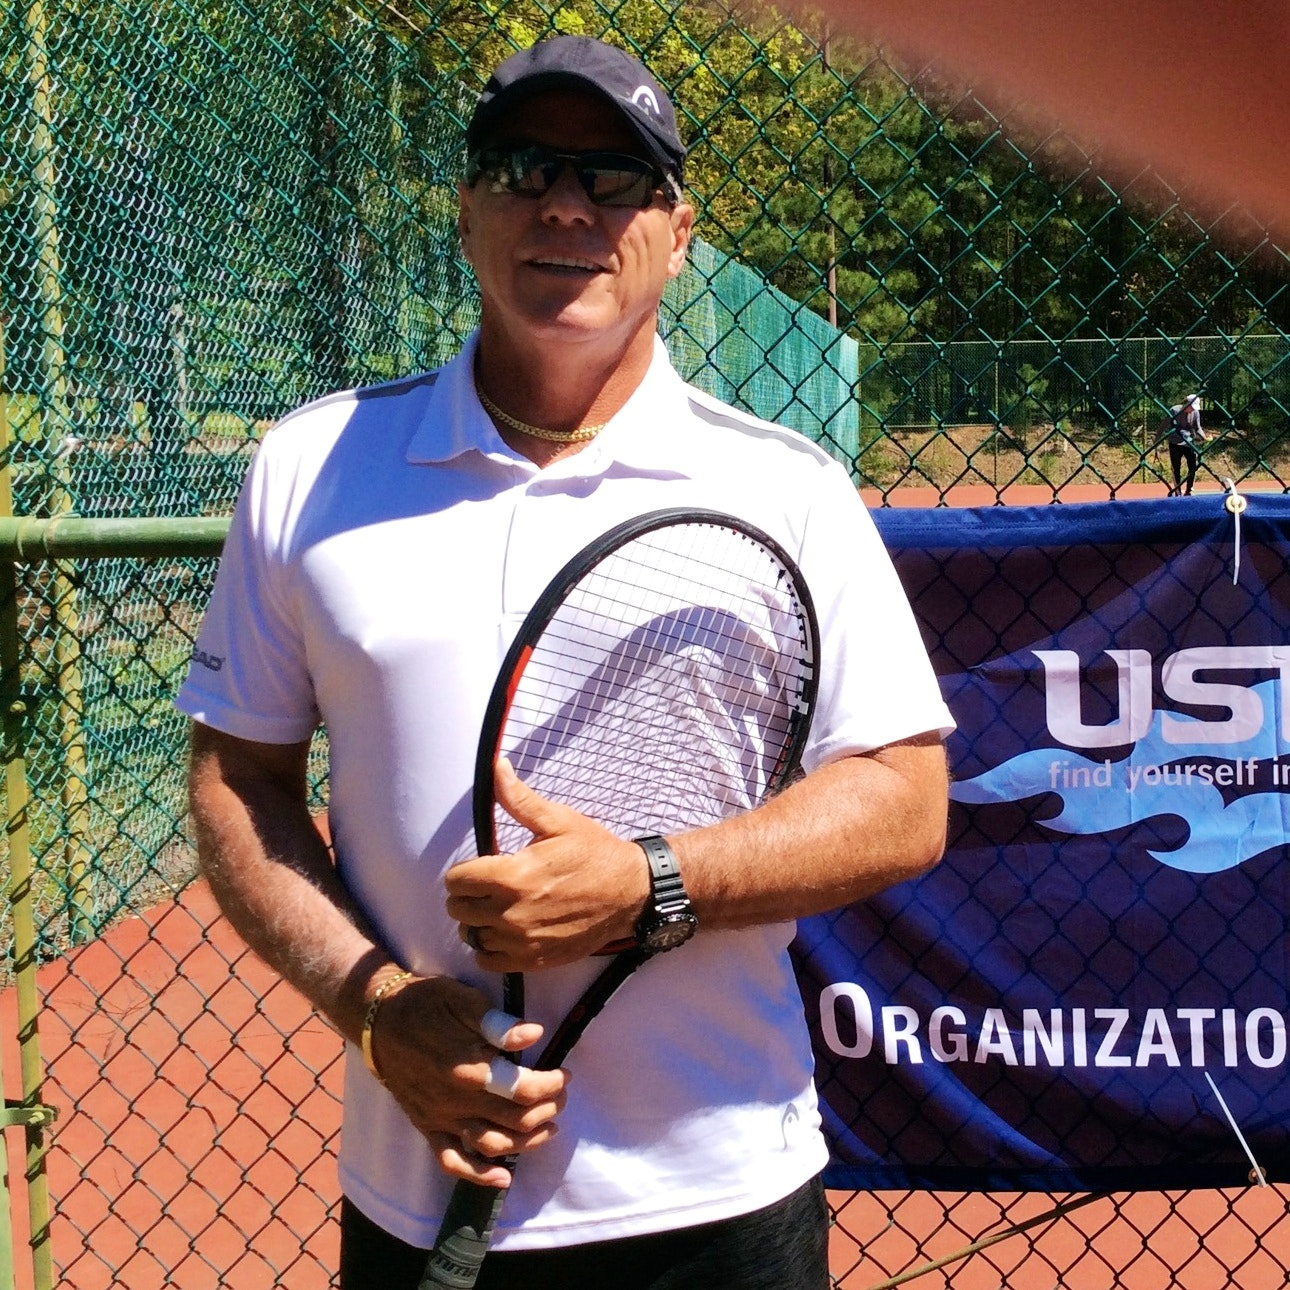 Juan C. teaches tennis lessons in Mooresville, NC